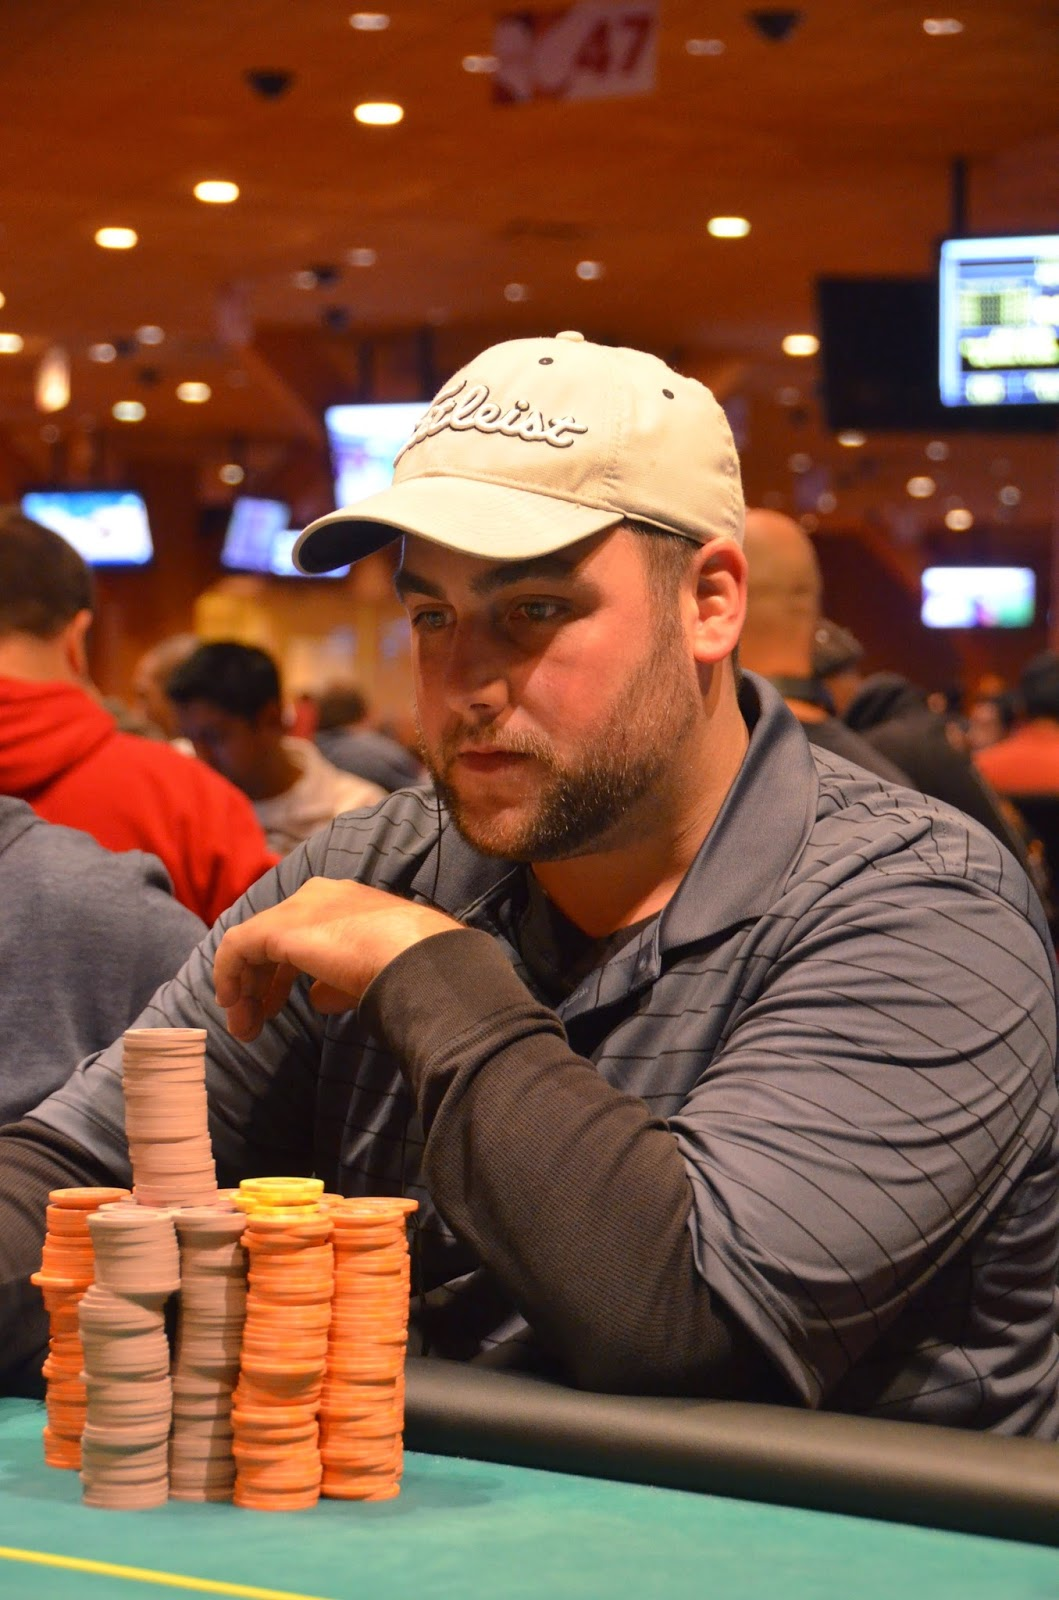 Parx big stax viii oct 1 20 2014 big stax 300 day 2 the millionaires club for Parx poker room live game report